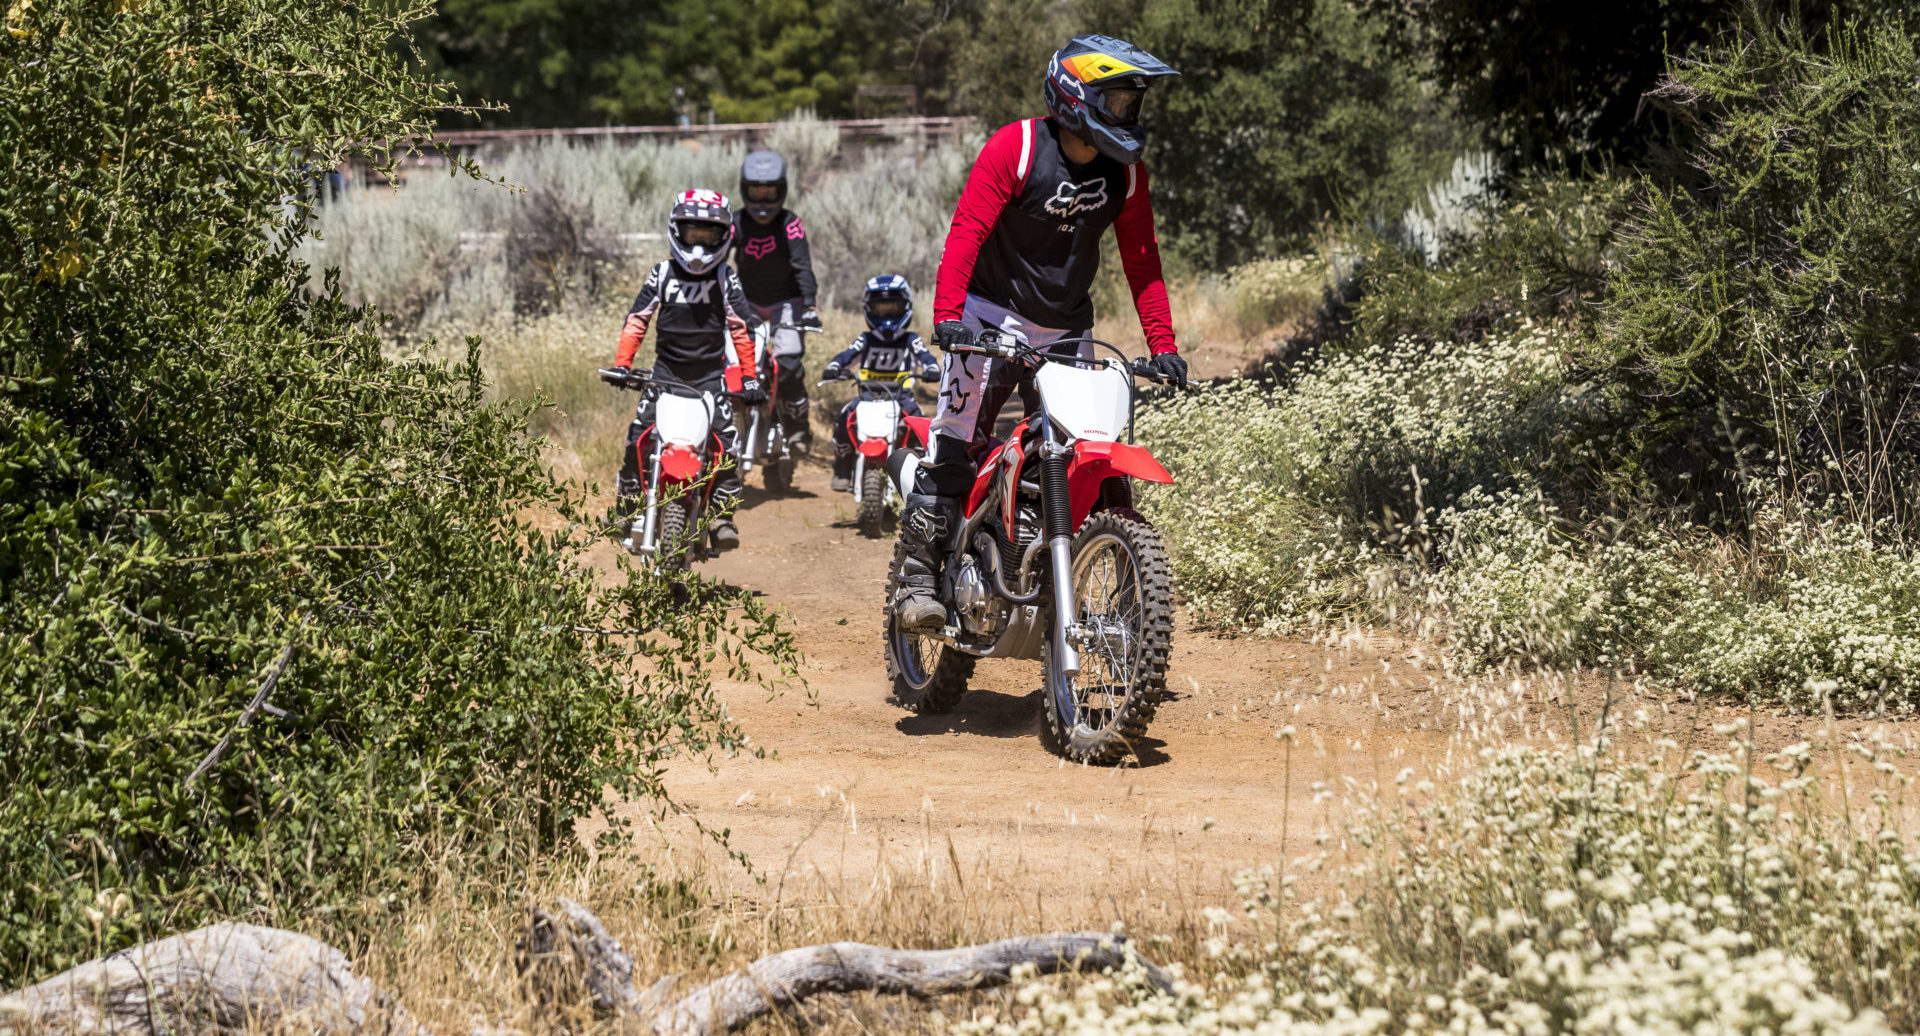 A group of riders on 2022-model Honda CRF off-road motorcycles. Photo courtesy American Honda.